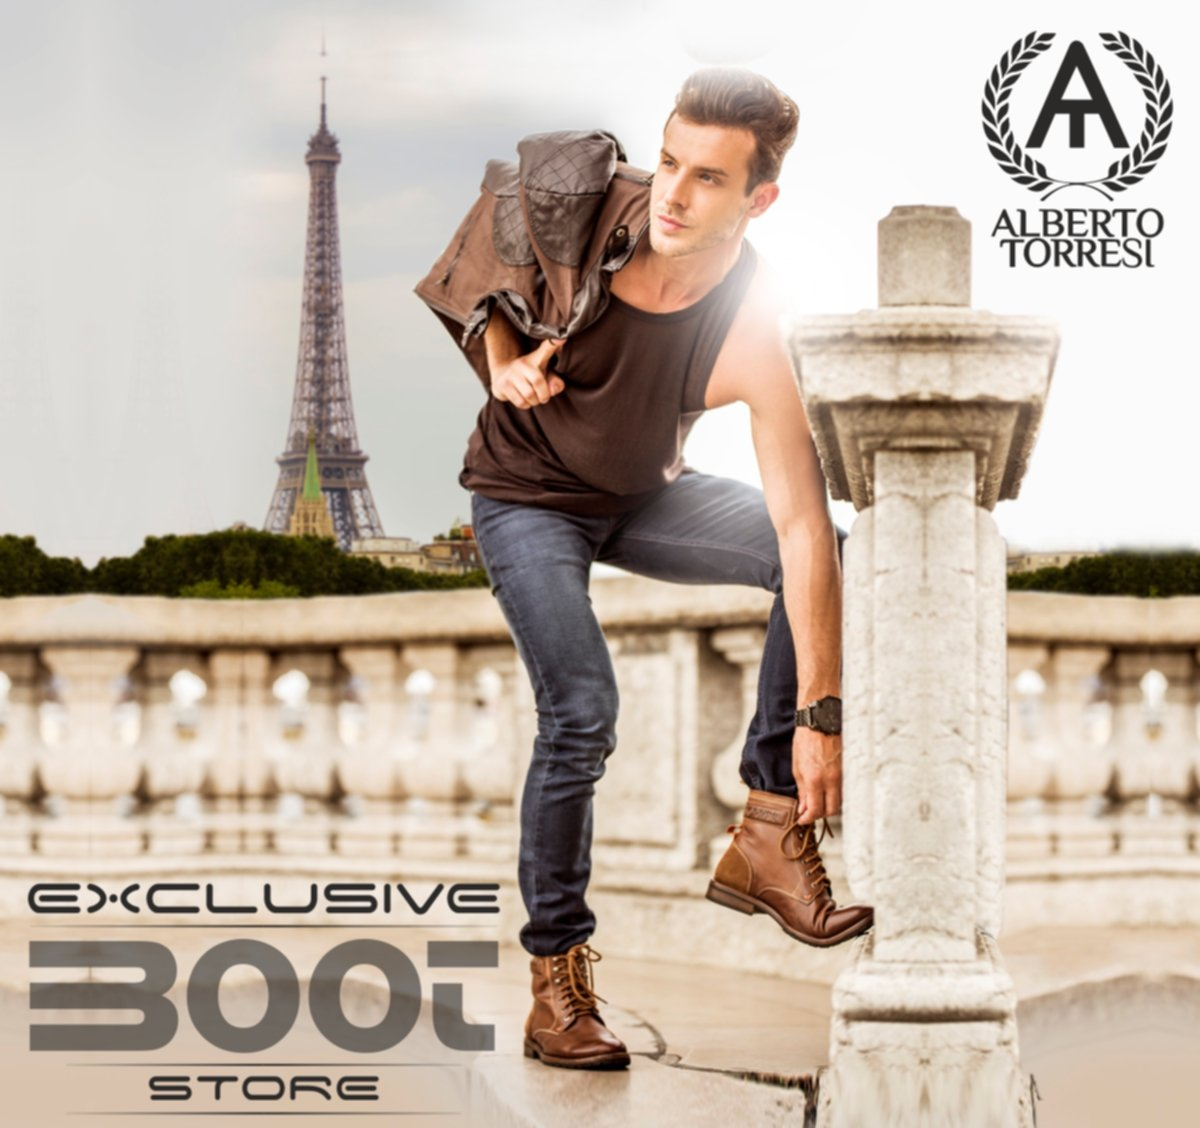 Exclusive Boots Store